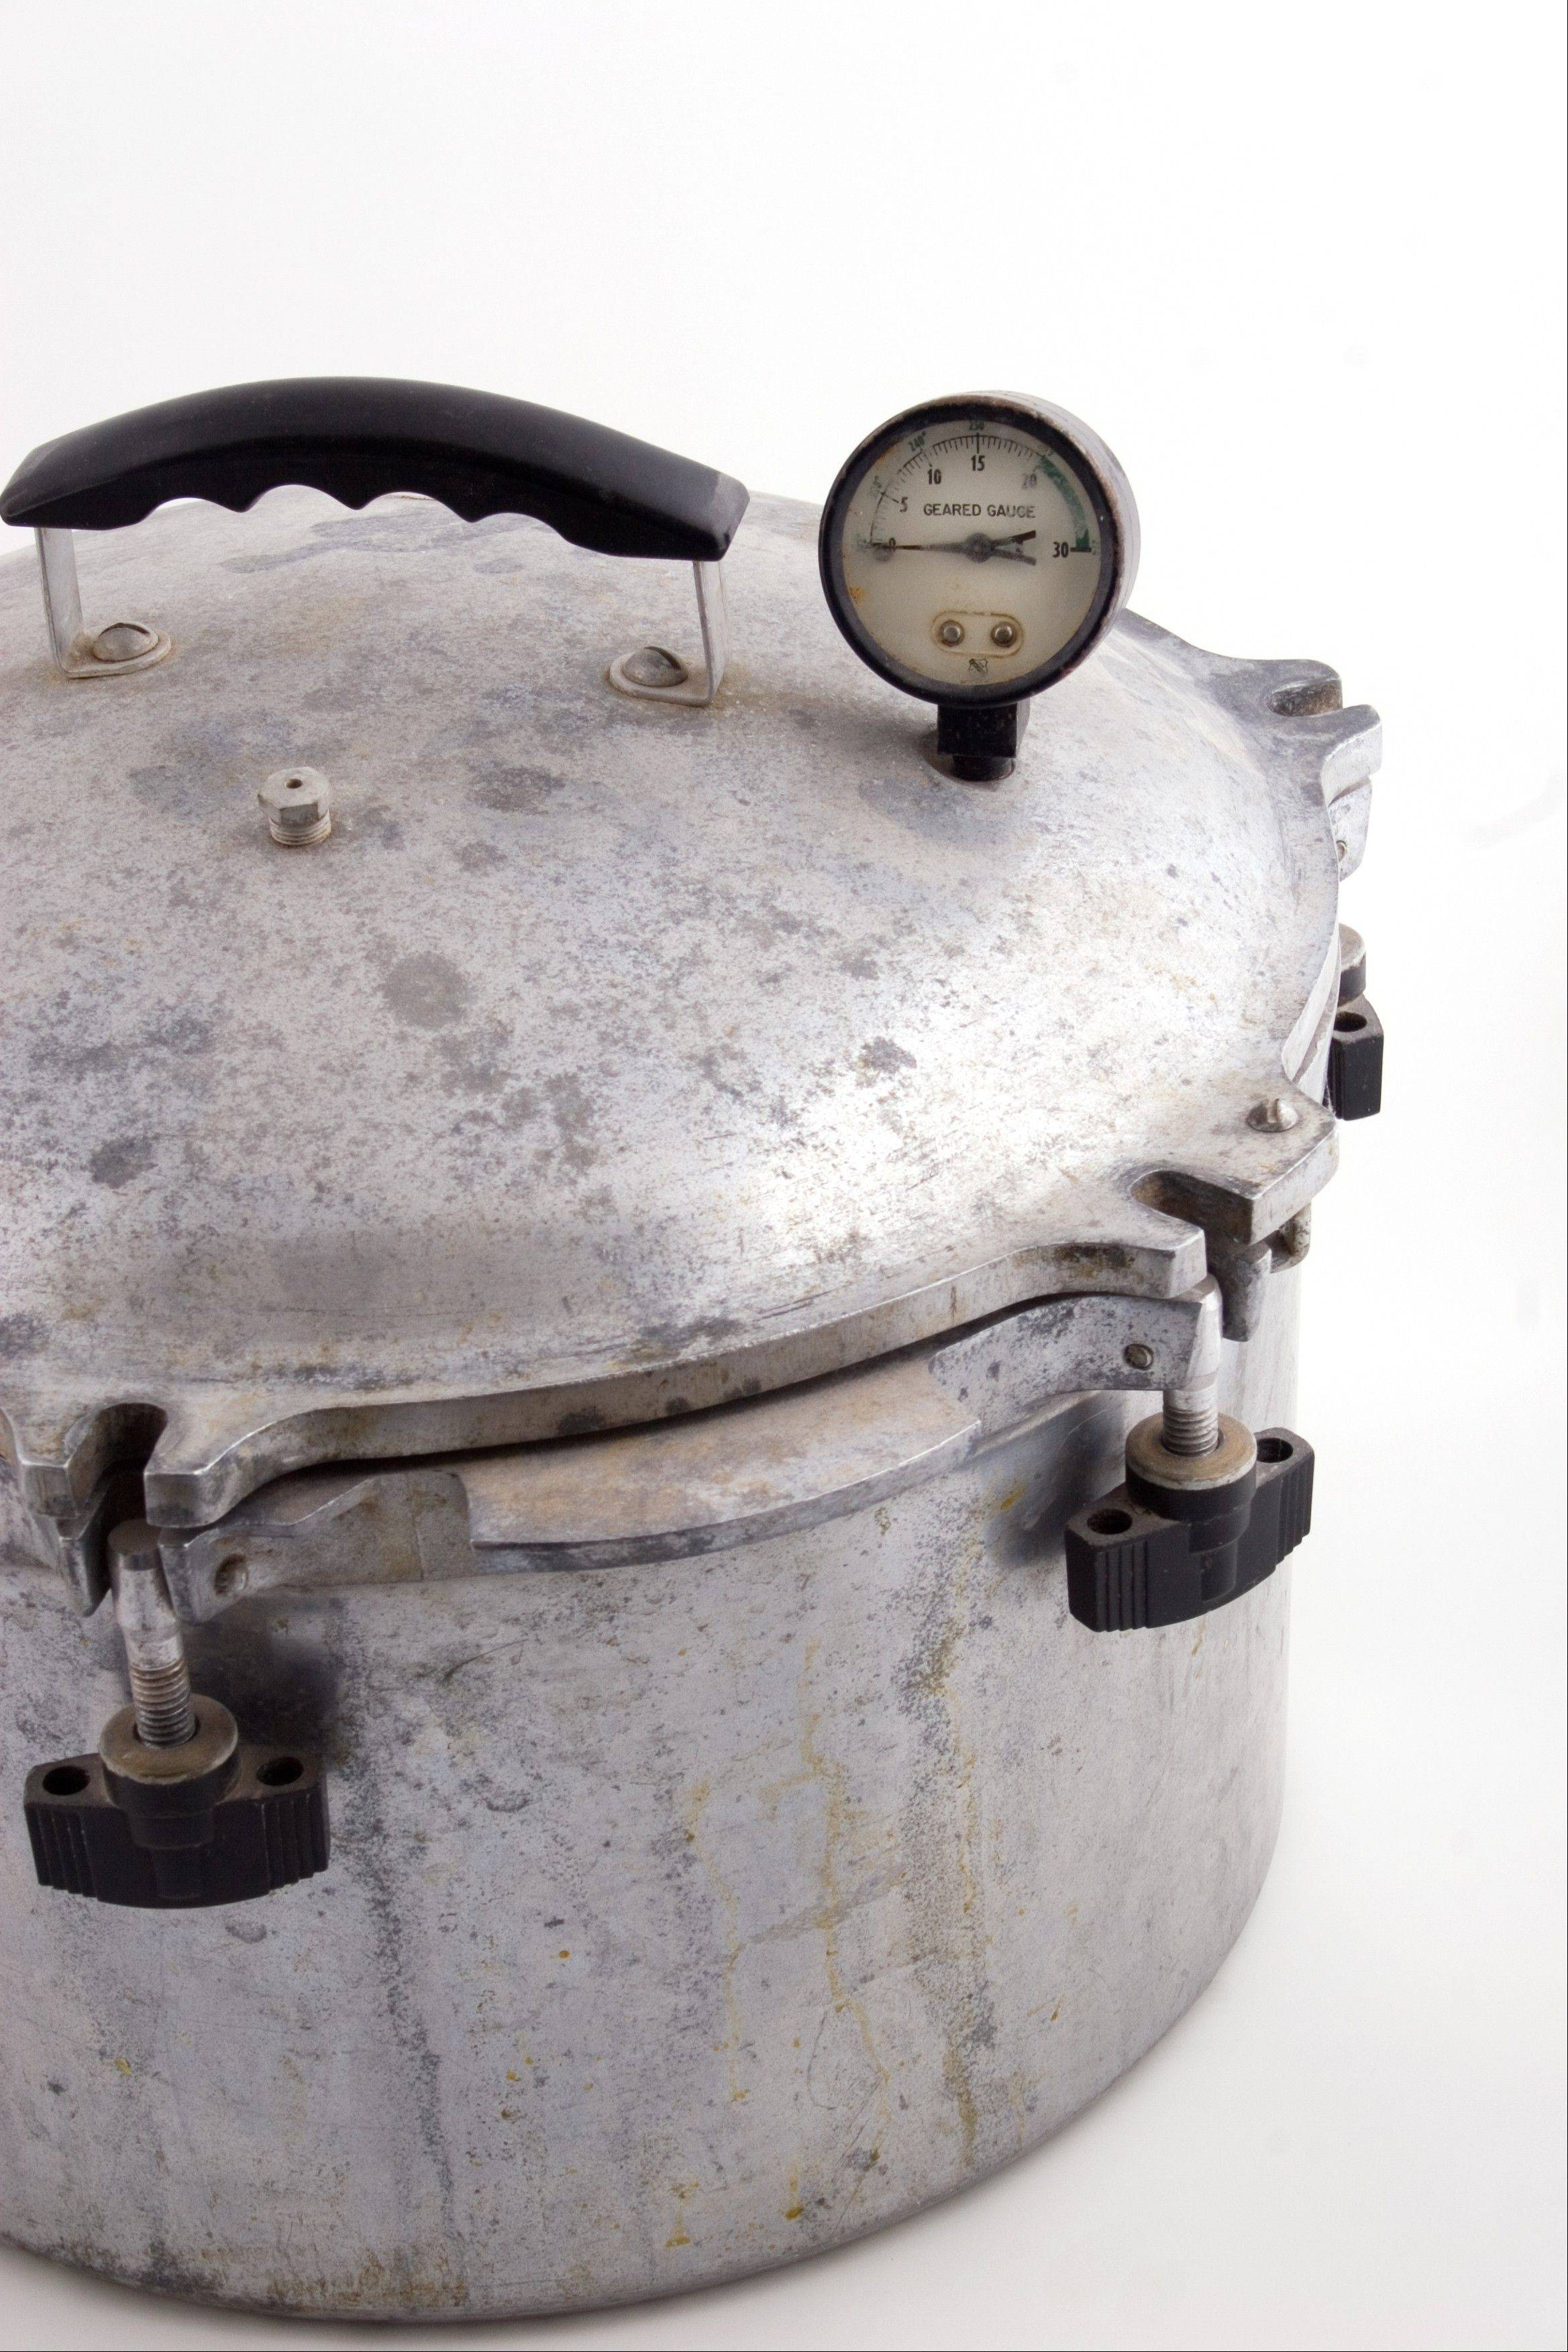 Don't be tempted to buy a late model pressure cooker at a garage sale or thrift shop. Today's cookers have better safety features.